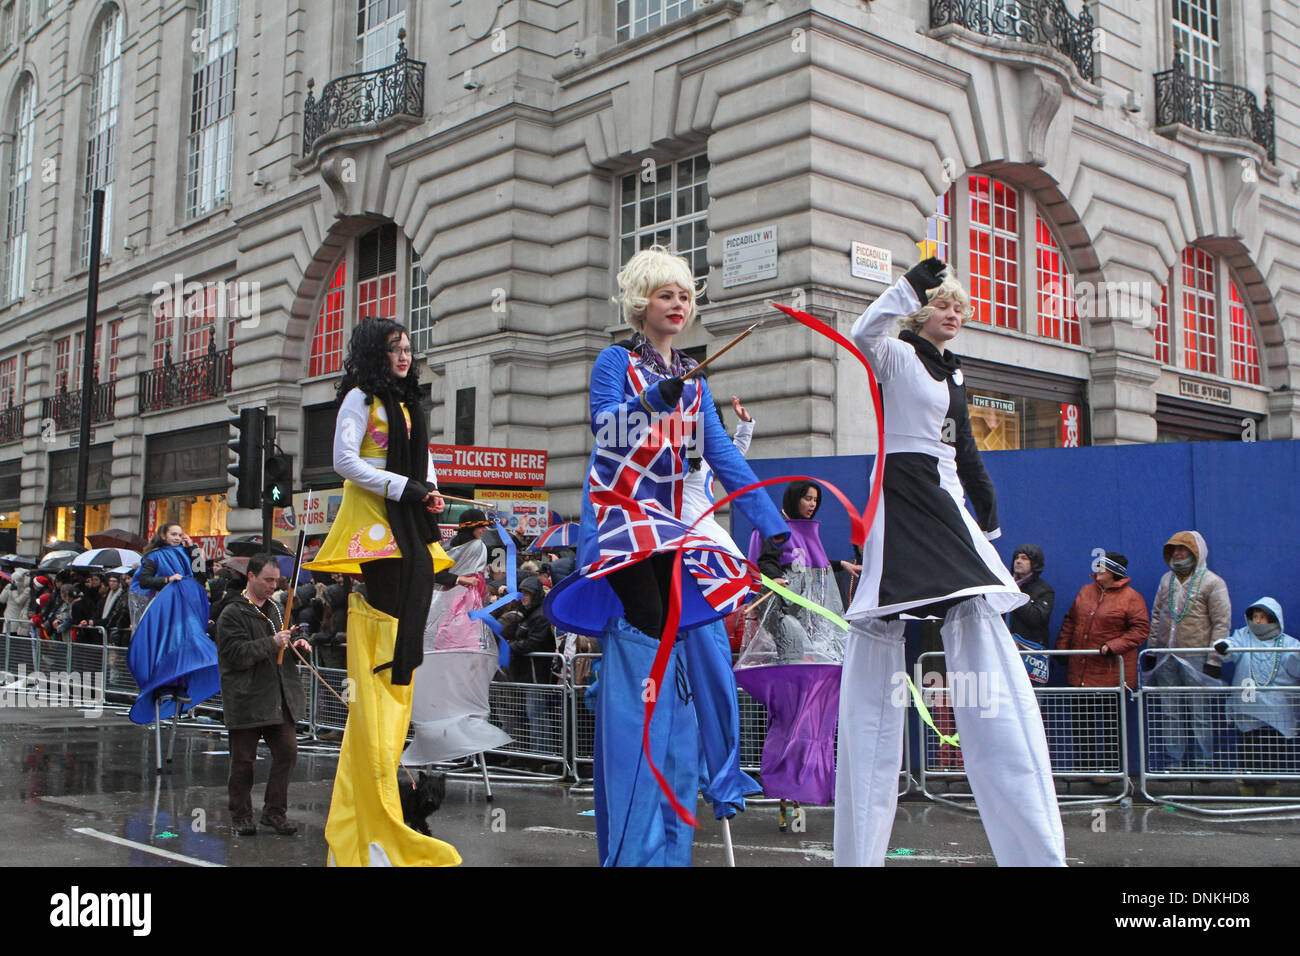 London,UK,1st January 2014,Walking tall at the London's New Year's Day Parade 2014 Credit: Keith Larby/Alamy Live News - Stock Image